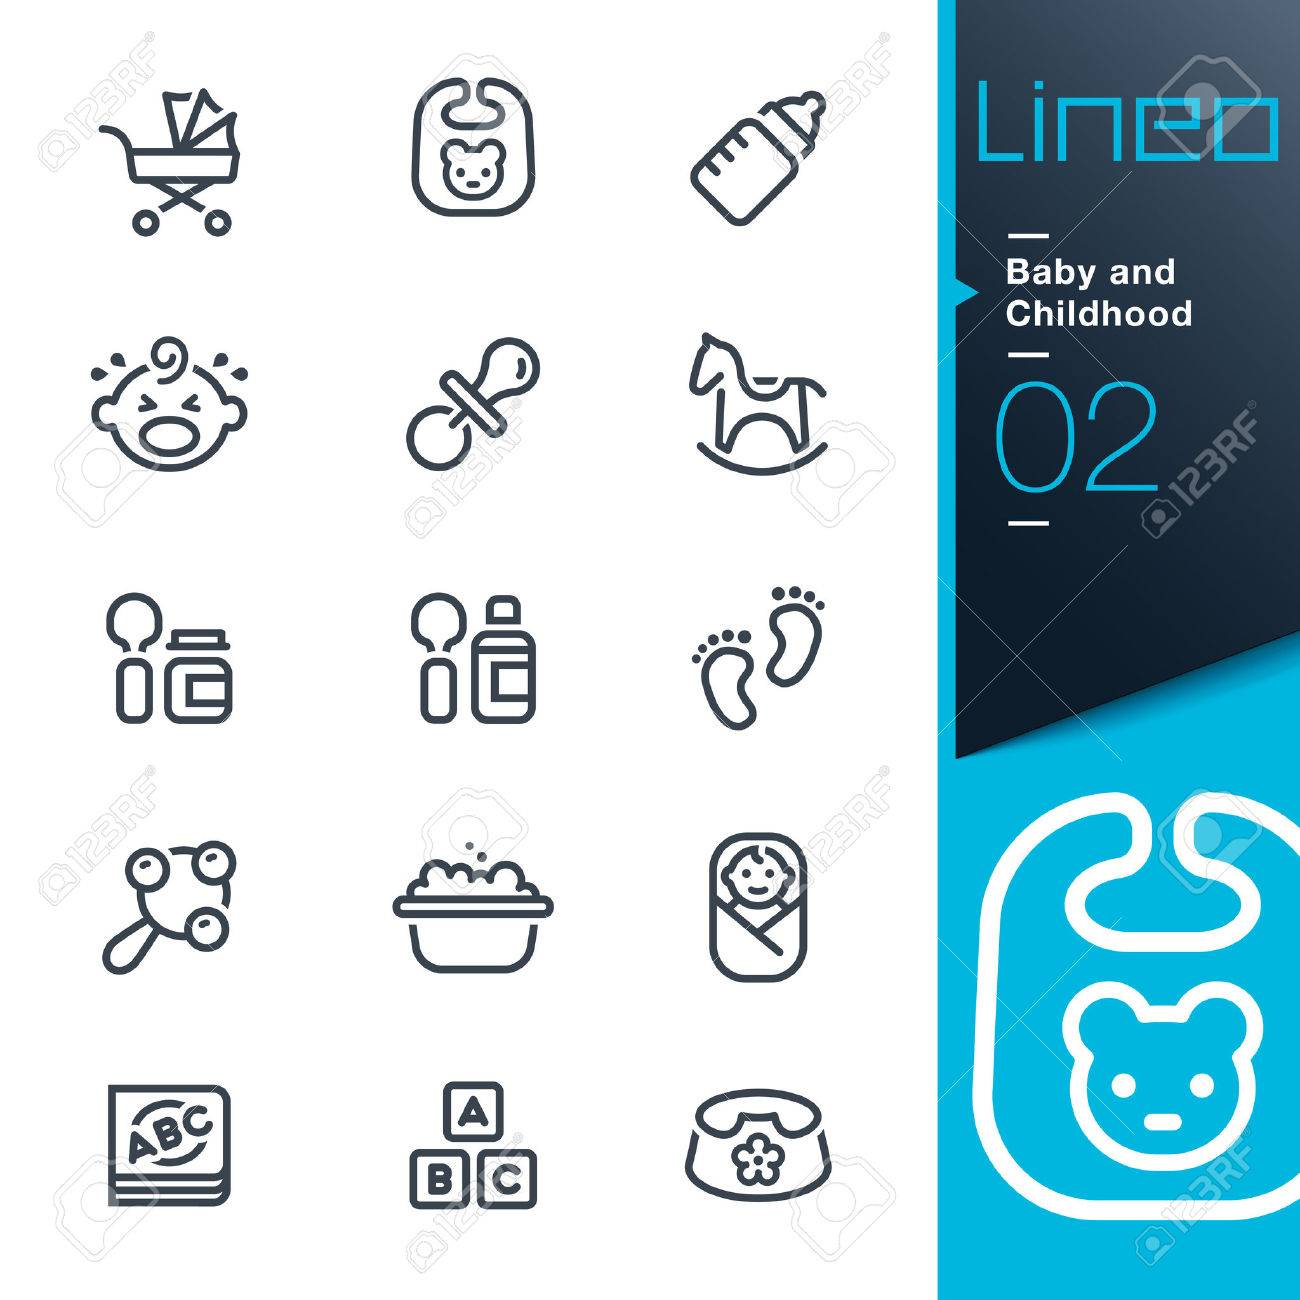 Lineo - Baby and Childhood outline icons - 27438832